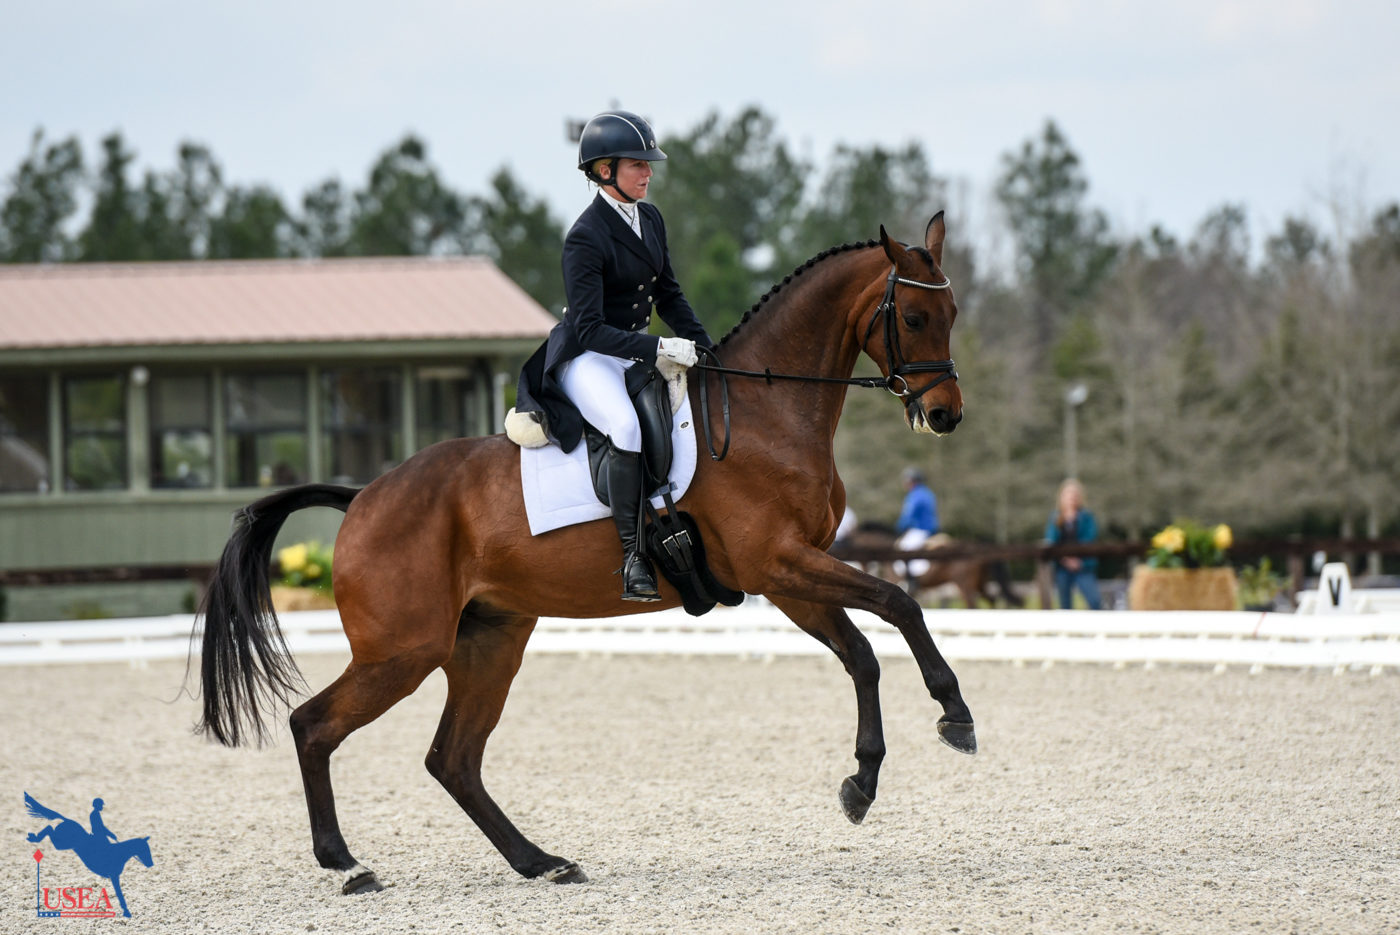 20thT - Alexandra Knowles and Ms. Poppins - 35.7